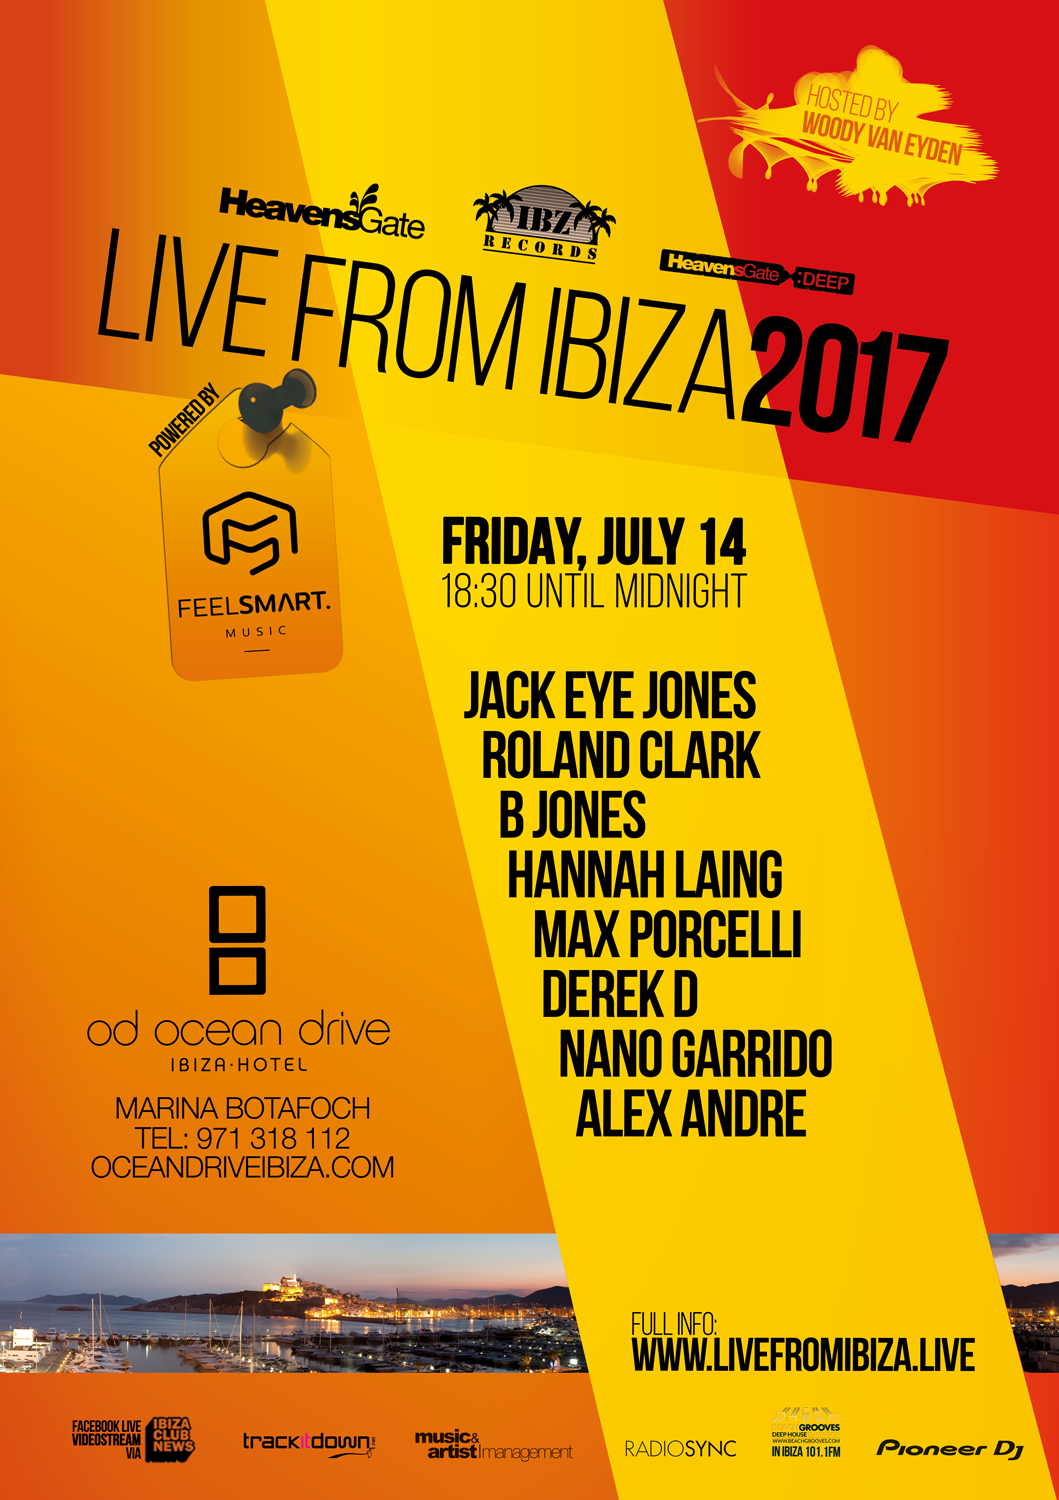 LIVEfromIBIZA Ocean Drive Night 1